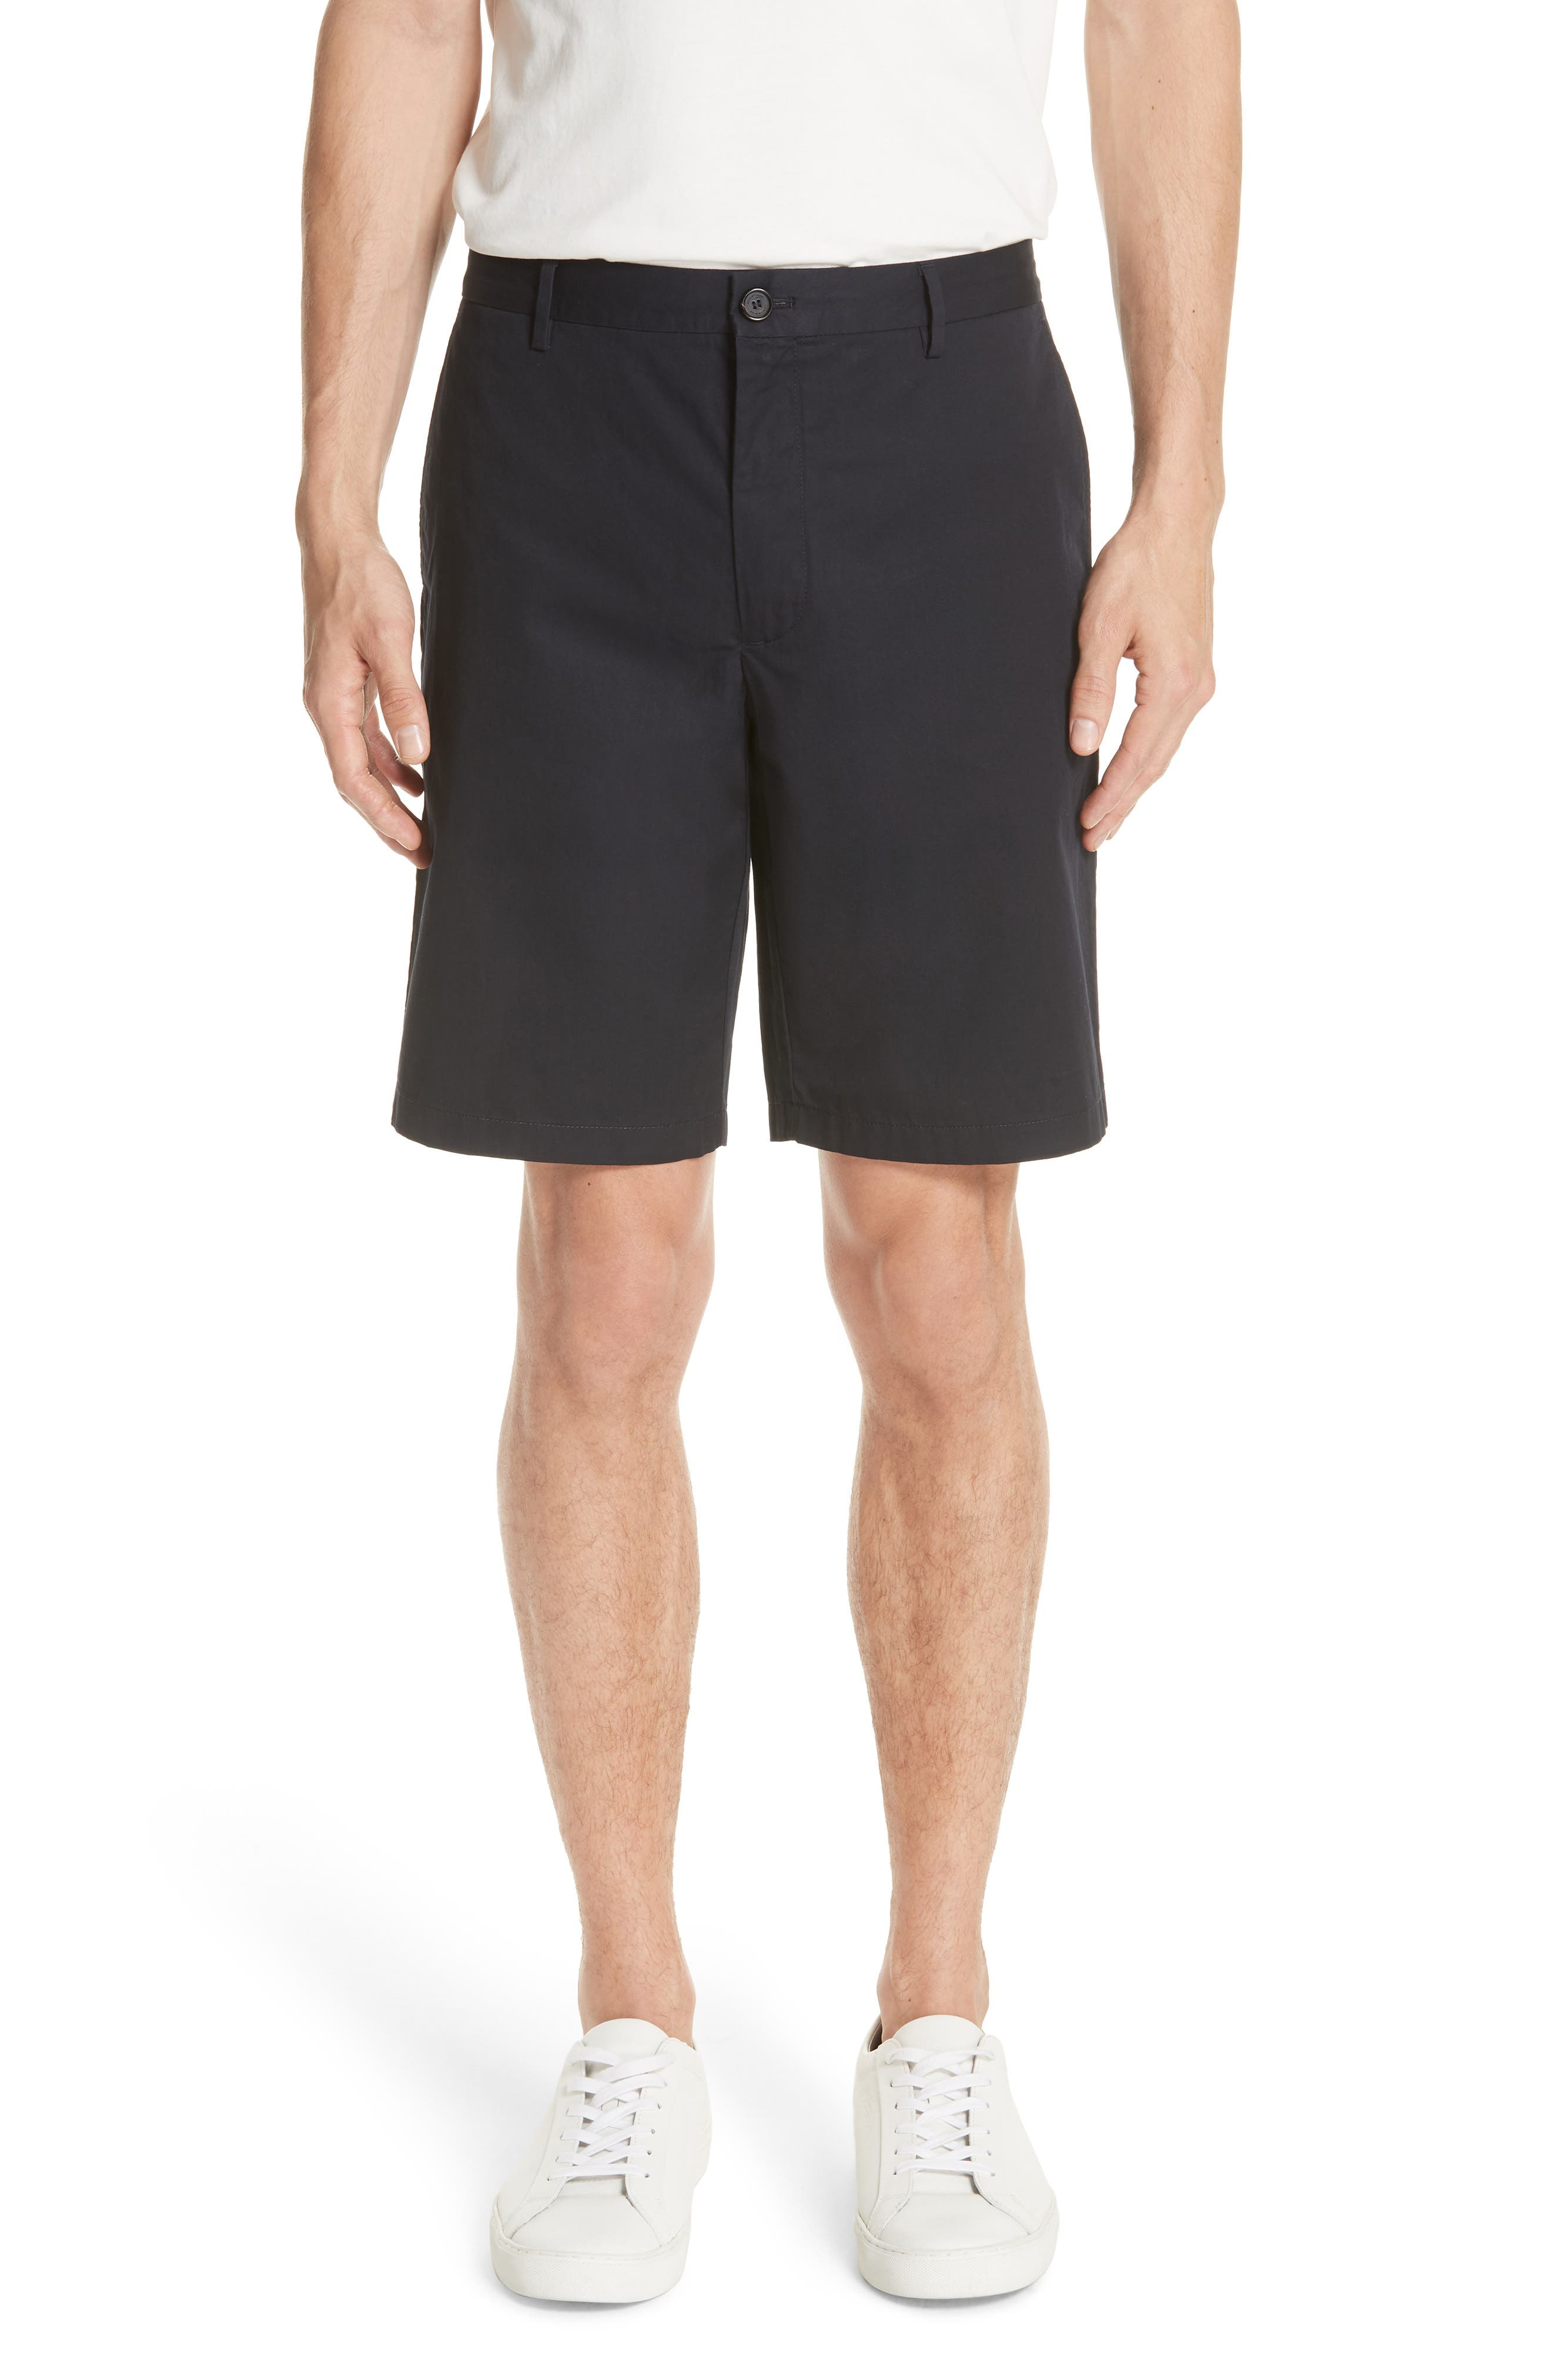 Stanhope Chino Shorts,                         Main,                         color, Ink